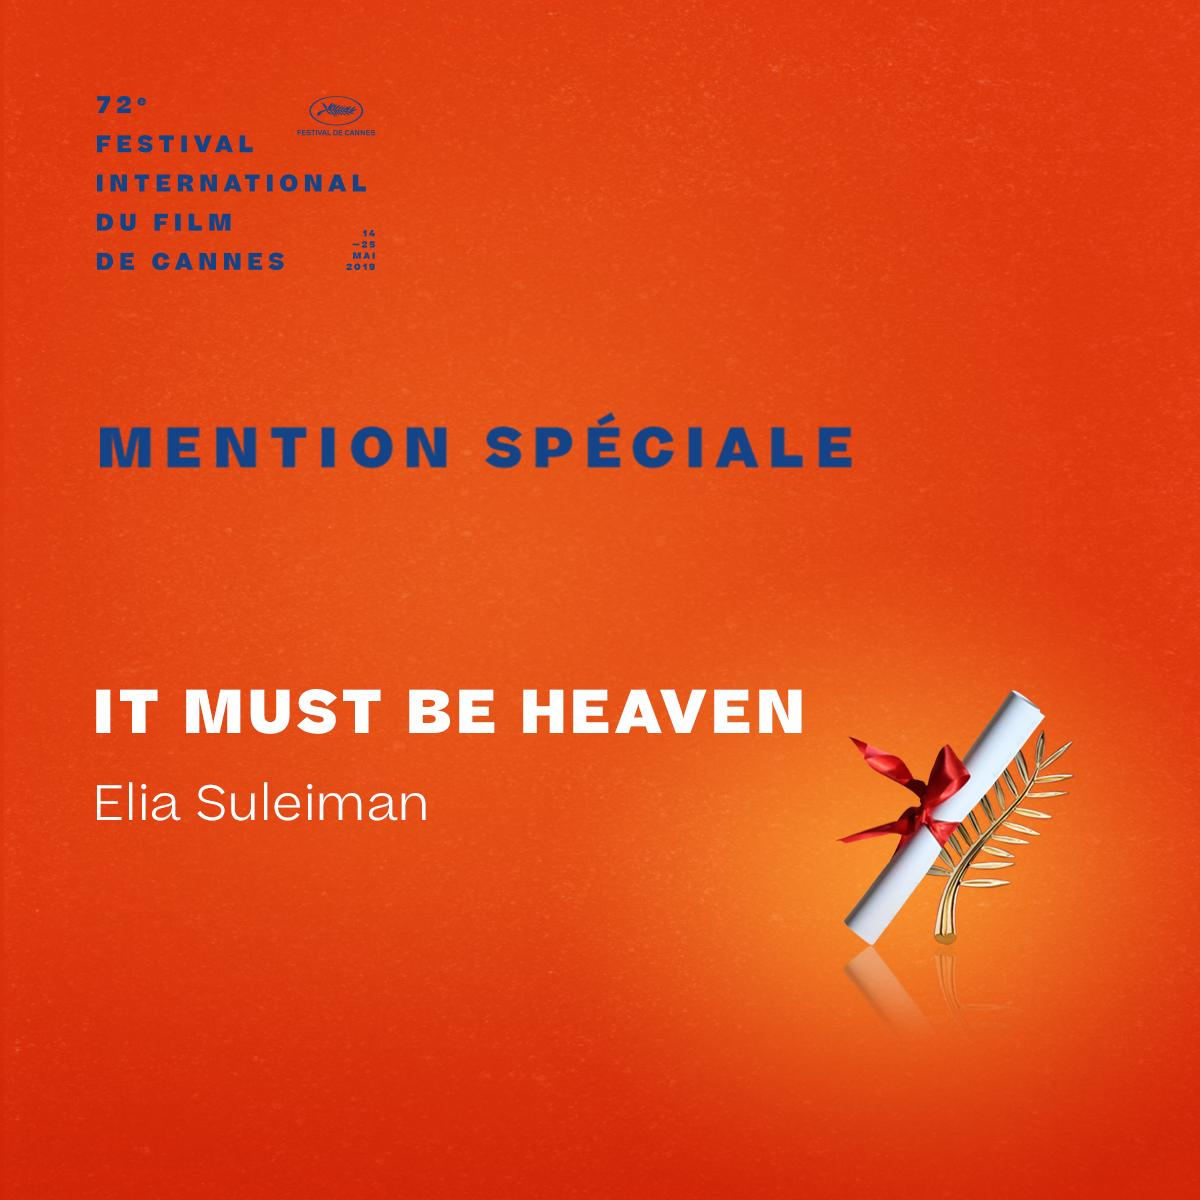 The Special Mention winner is… Elia Suleiman for #ItMustBeHeaven  #Cannes2019 #Awards https://t.co/3BIP9Sv7oY